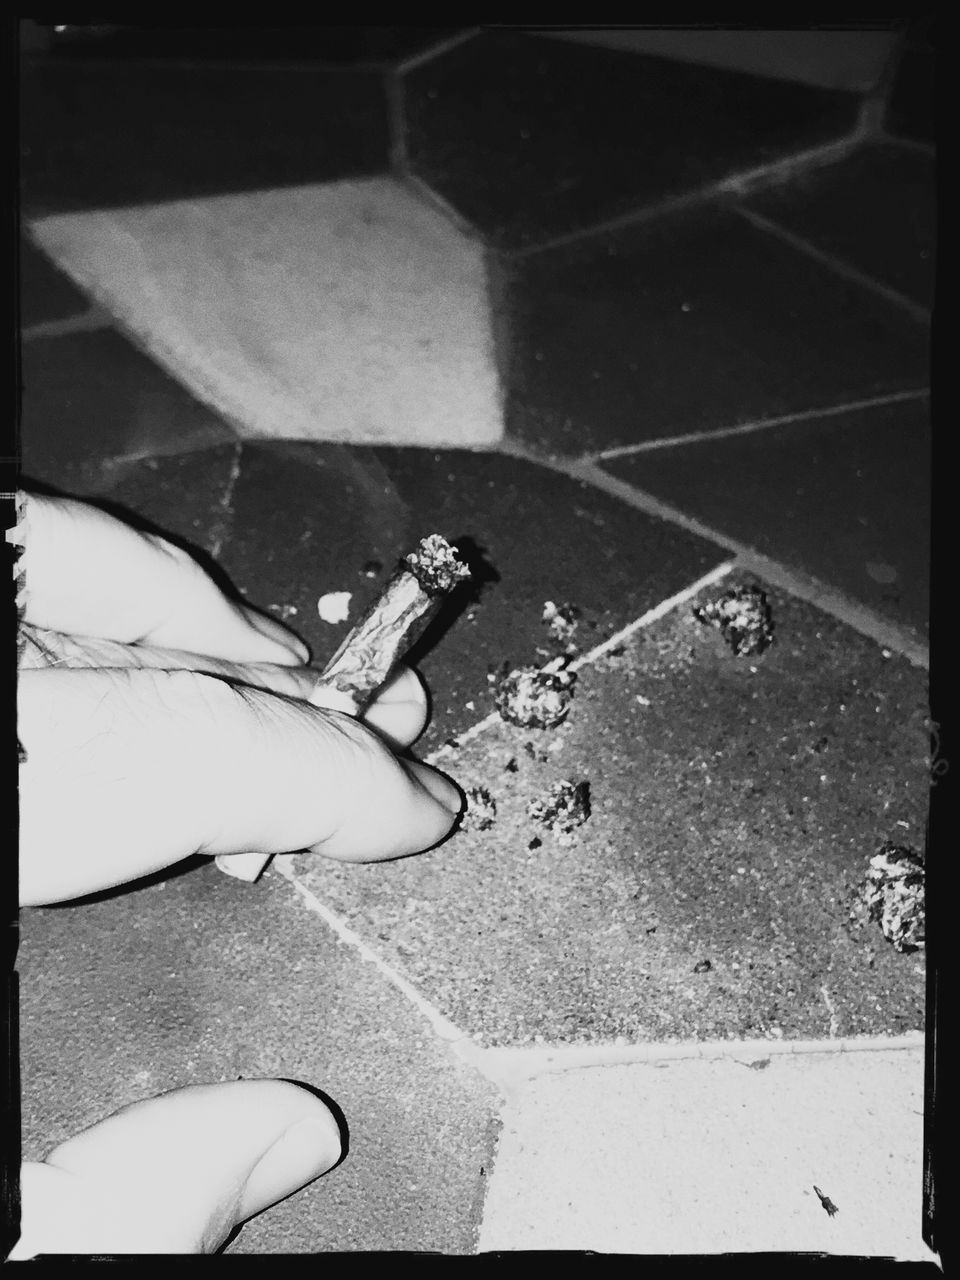 LOW SECTION OF PERSON HOLDING CIGARETTE ON FLOOR